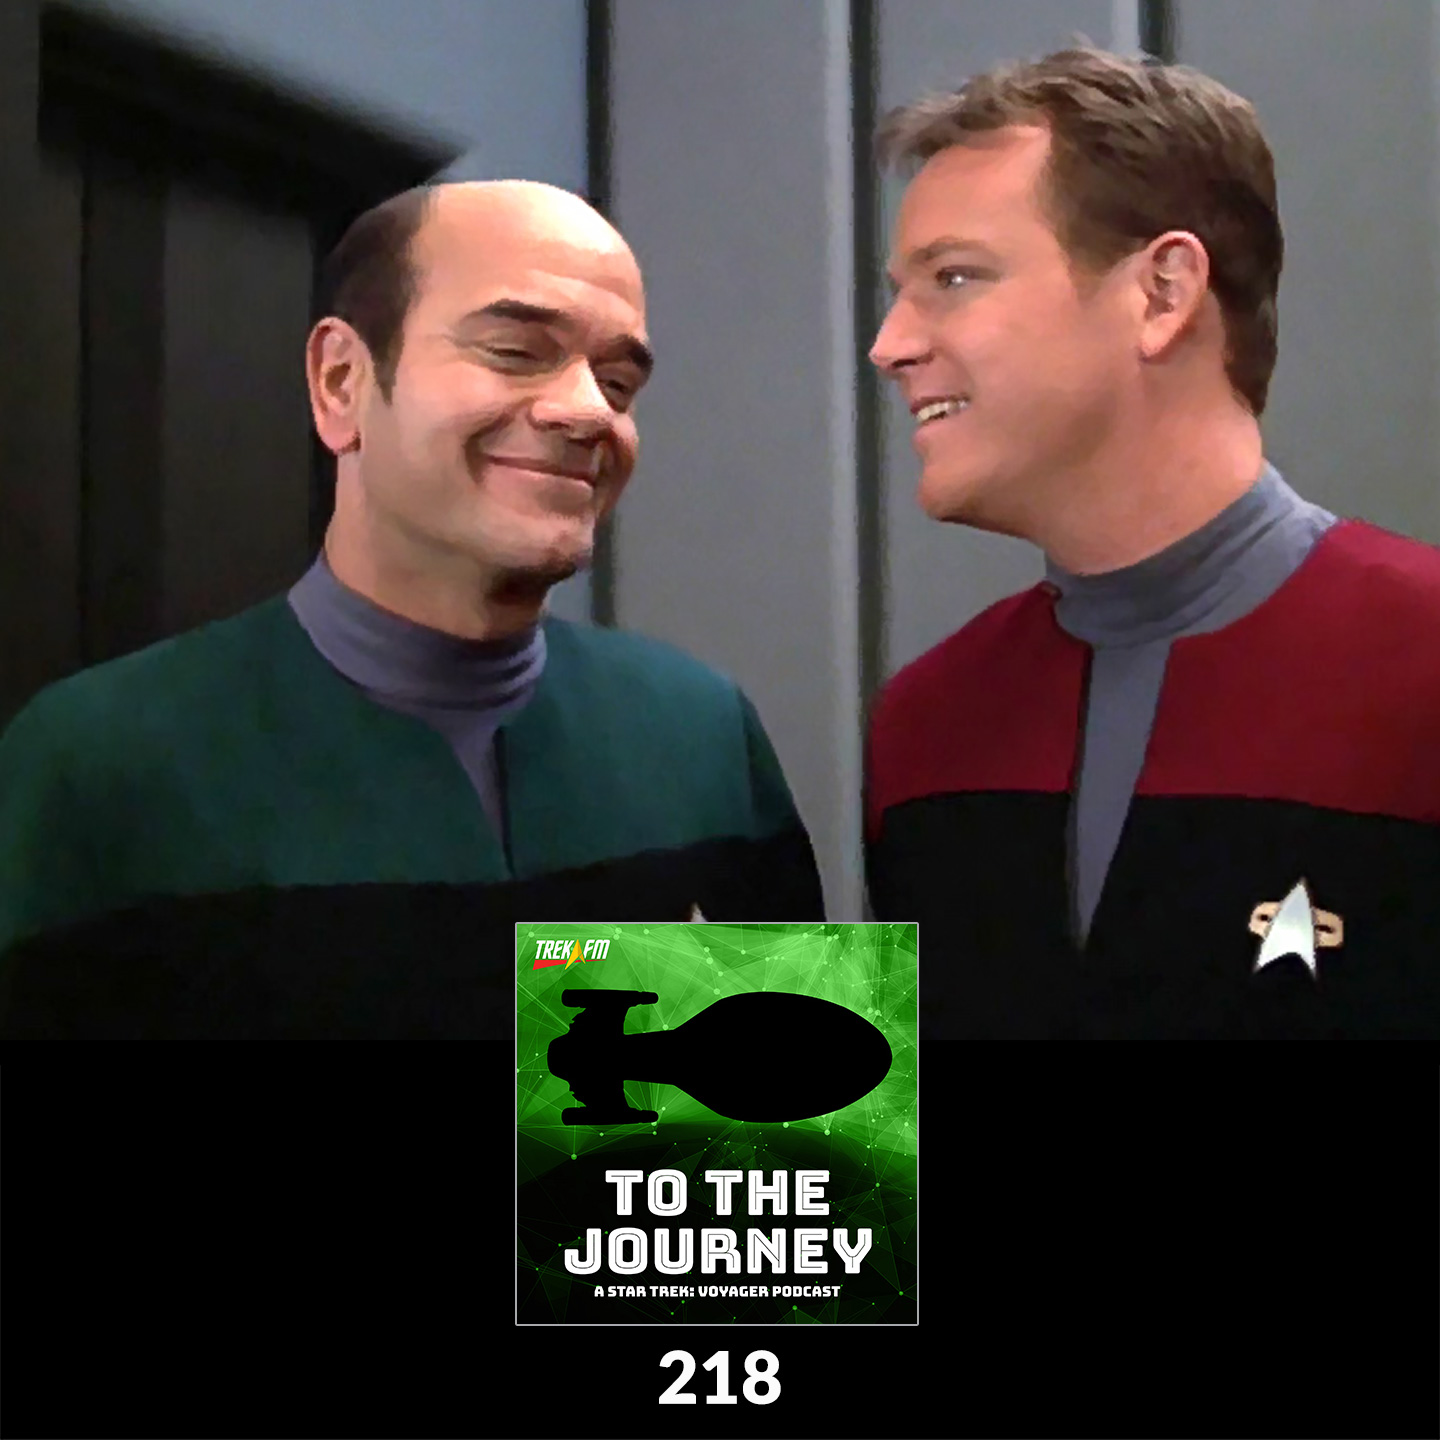 To The Journey 218: One Hand on the Joystick - Favorite Tom Paris / EMH Moments.